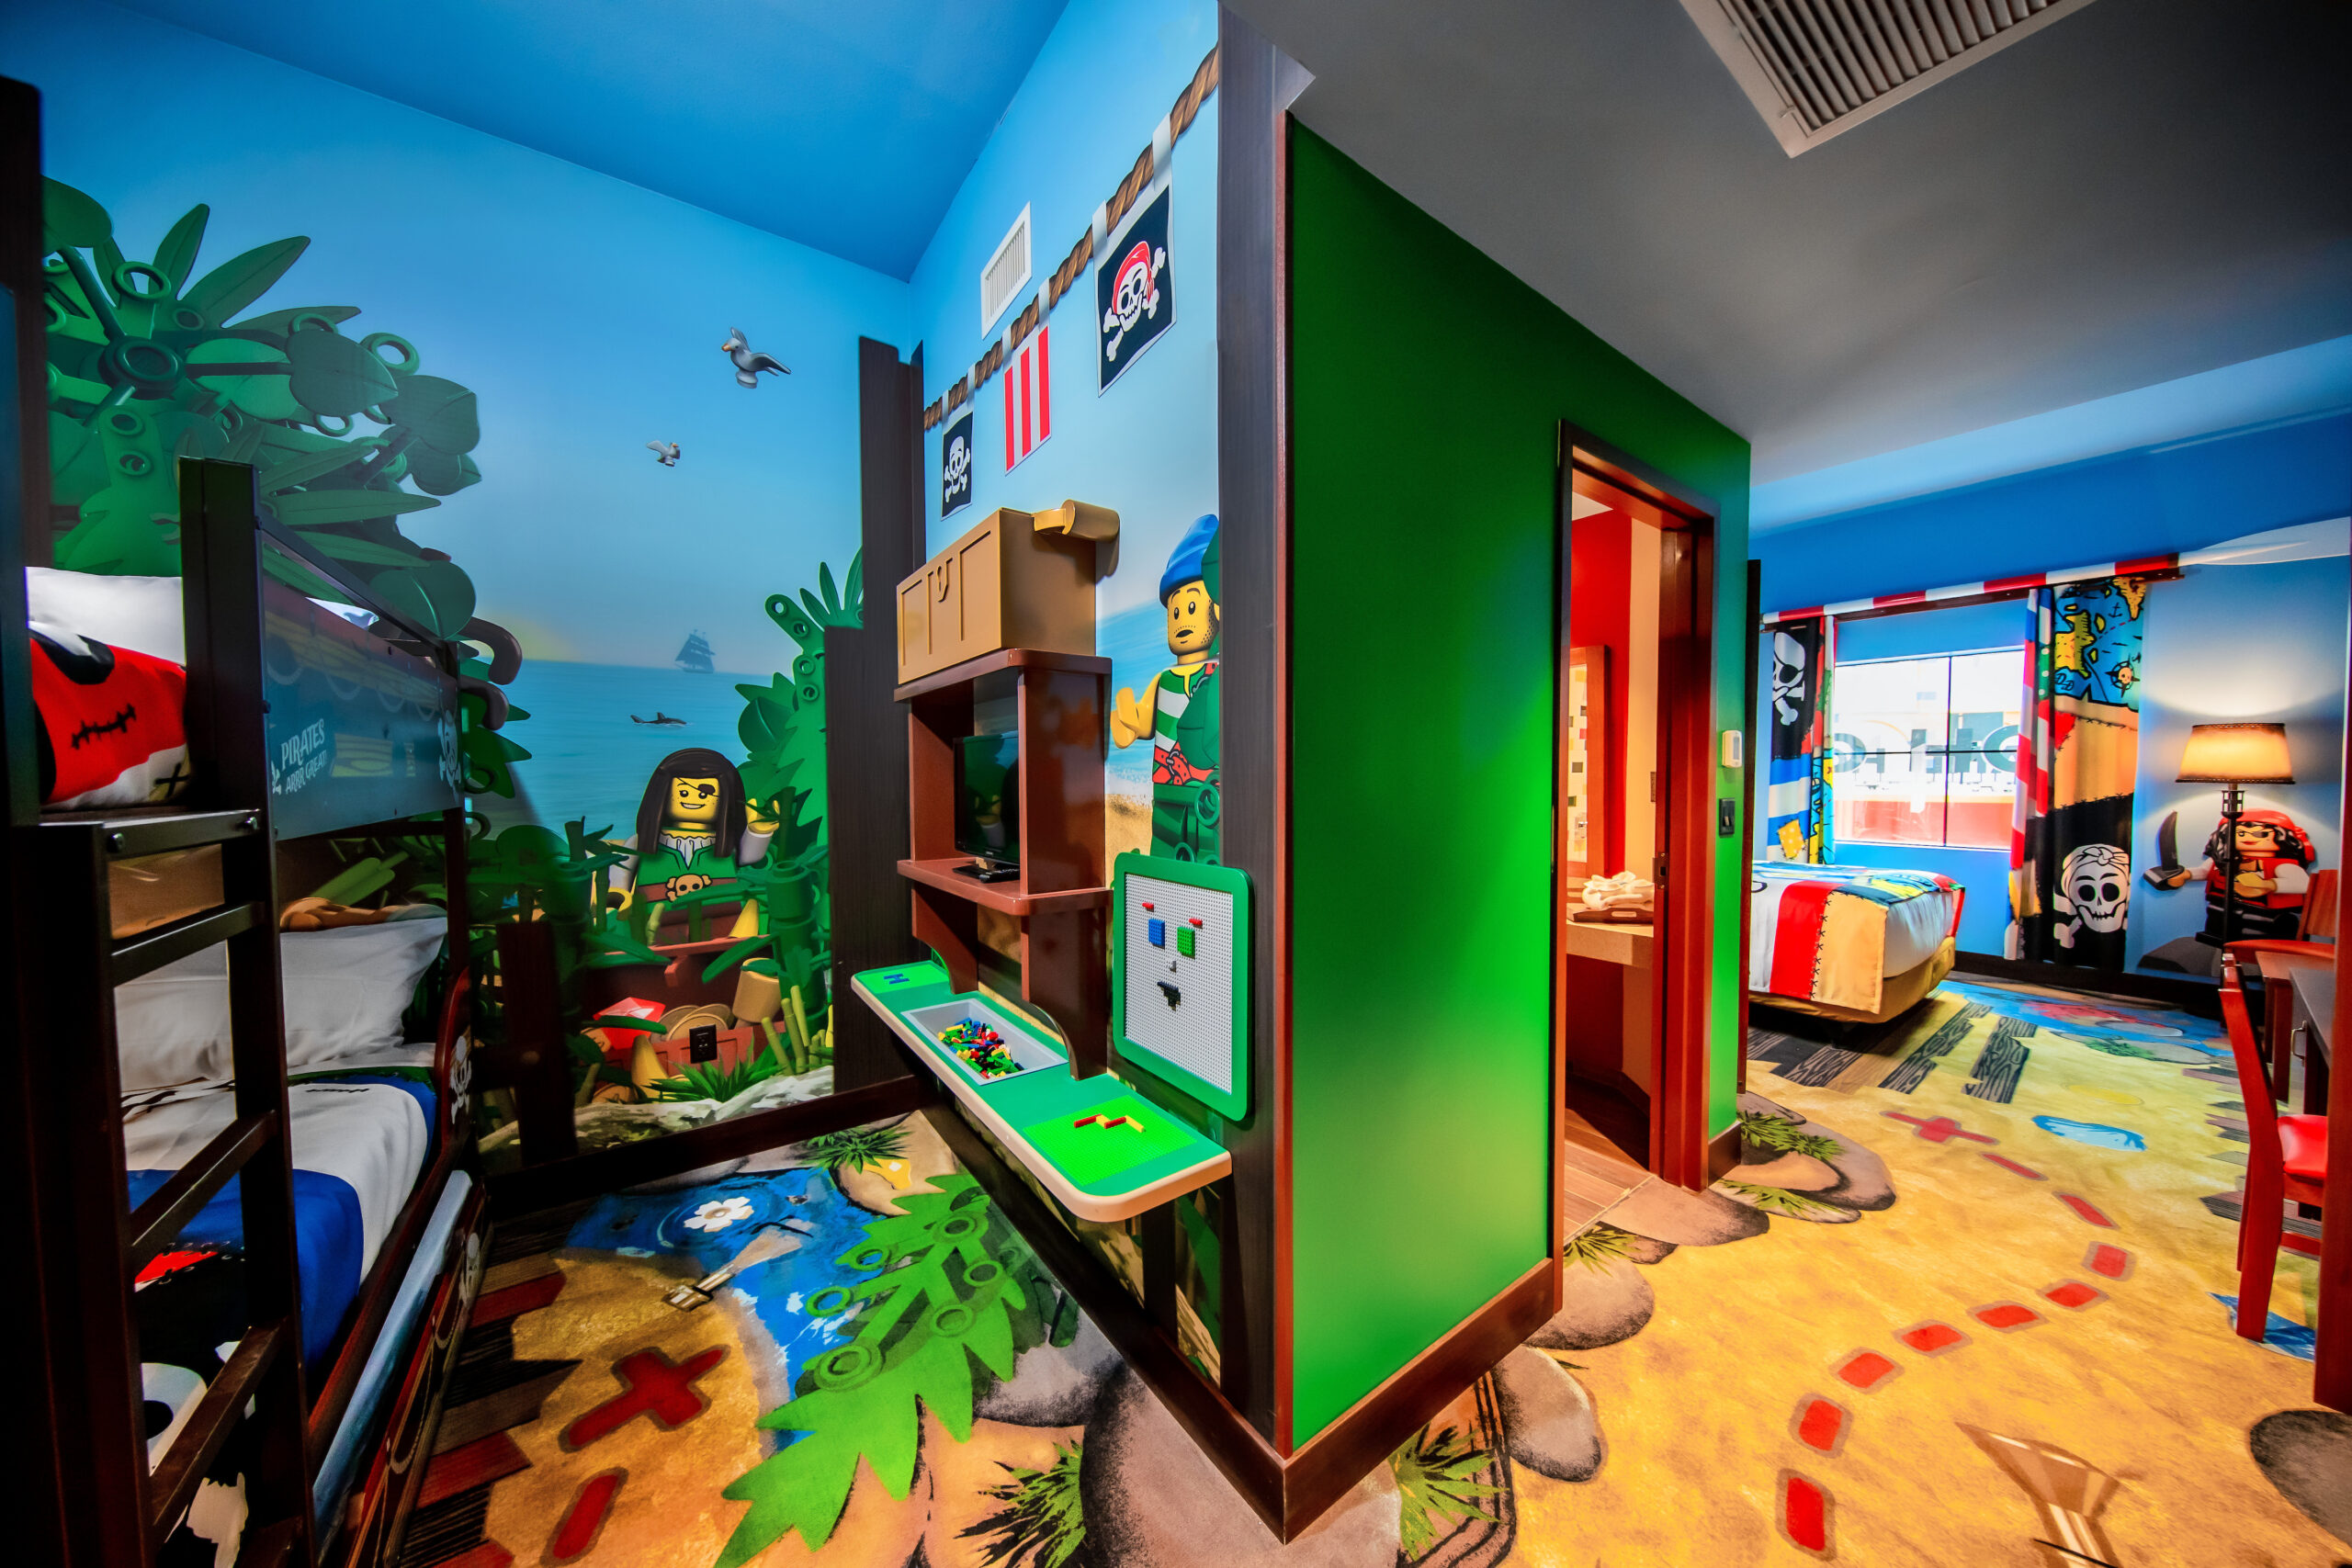 Themed room at the Pirate Island Hotel LEGOLAND